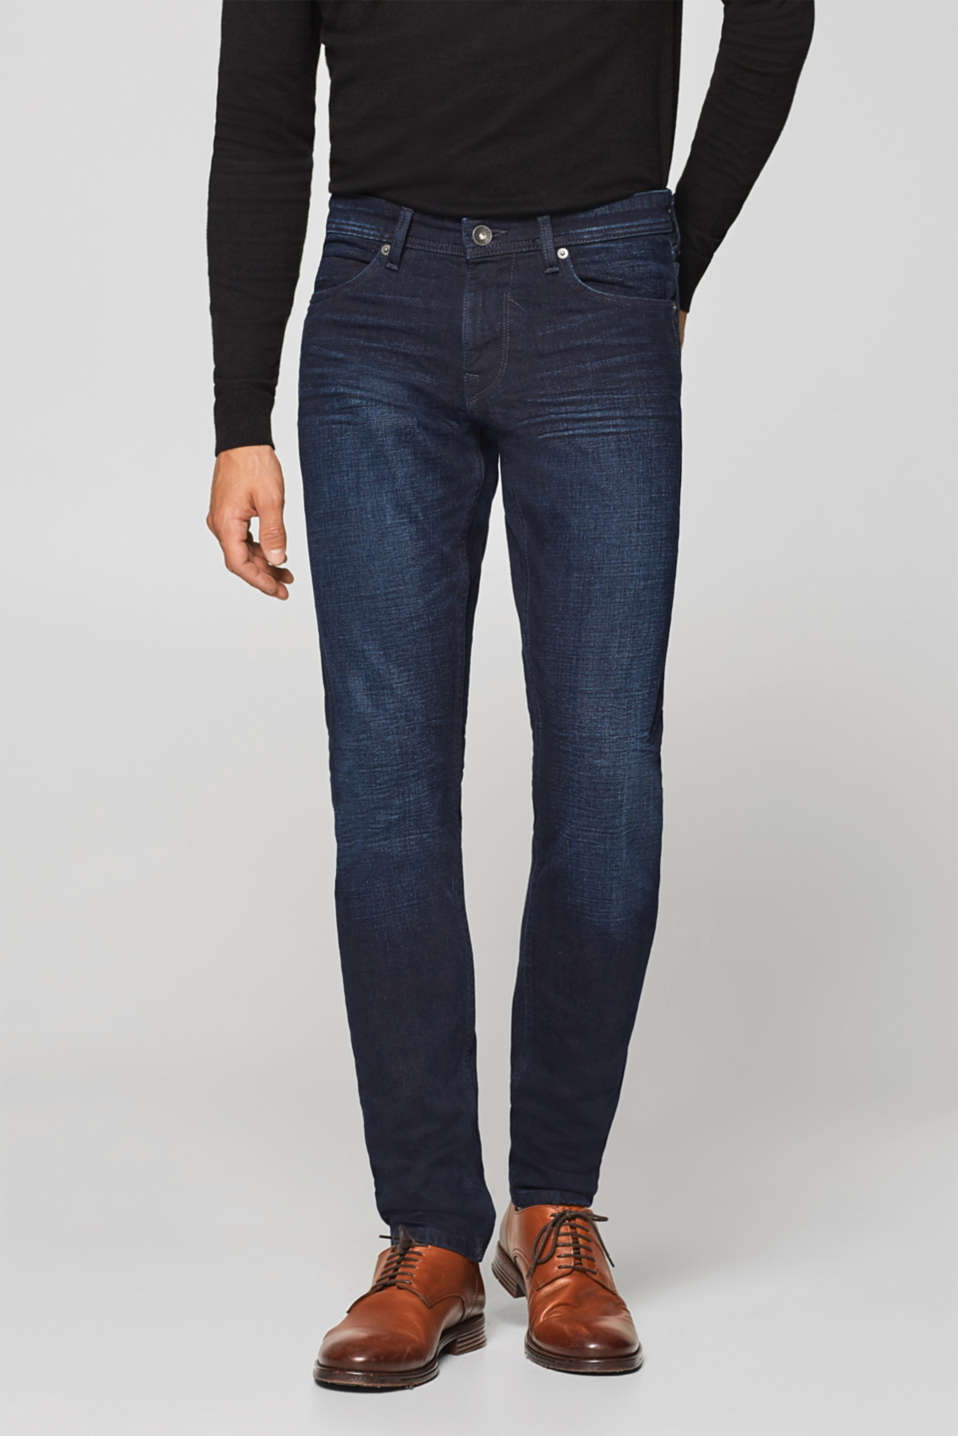 Esprit - Vintage wash stretch jeans